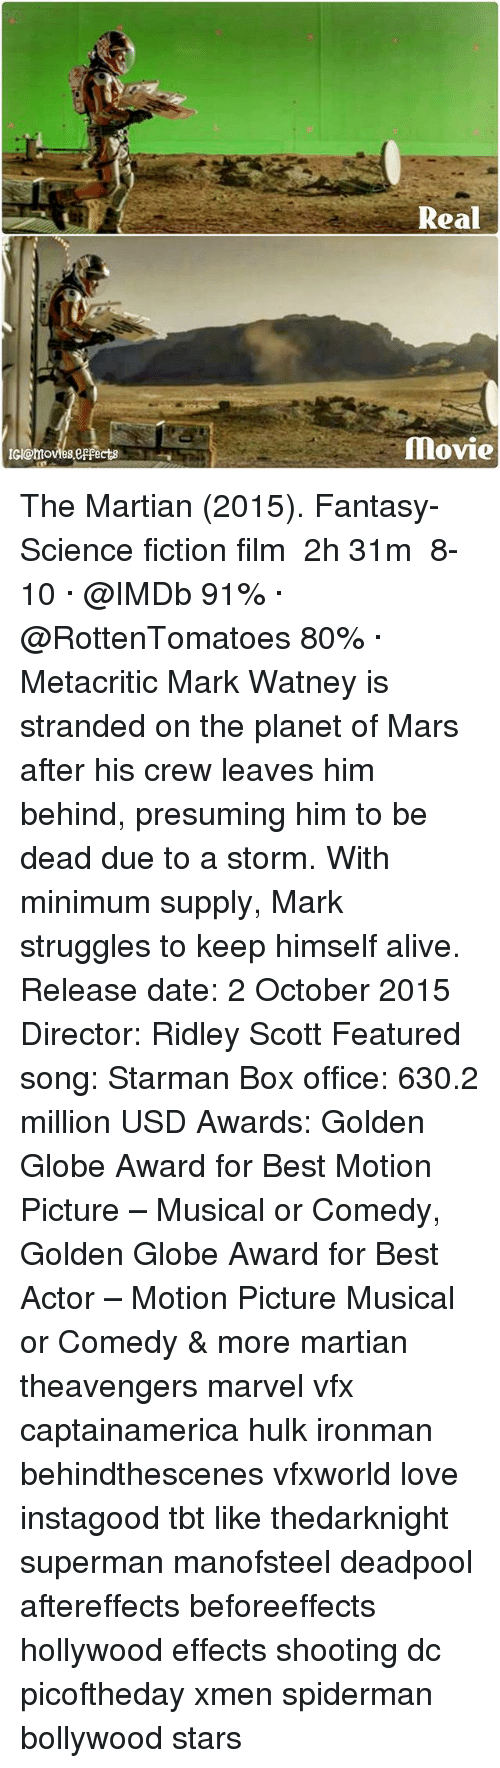 Alive, Golden Globes, and Love: Real  movie  c @moves eepacts The Martian (2015). Fantasy-Science fiction film ‧ 2h 31m  8-10 · @IMDb 91% · @RottenTomatoes 80% · Metacritic Mark Watney is stranded on the planet of Mars after his crew leaves him behind, presuming him to be dead due to a storm. With minimum supply, Mark struggles to keep himself alive. Release date: 2 October 2015 Director: Ridley Scott Featured song: Starman Box office: 630.2 million USD Awards: Golden Globe Award for Best Motion Picture – Musical or Comedy, Golden Globe Award for Best Actor – Motion Picture Musical or Comedy & more martian theavengers marvel vfx captainamerica hulk ironman behindthescenes vfxworld love instagood tbt like thedarknight superman manofsteel deadpool aftereffects beforeeffects hollywood effects shooting dc picoftheday xmen spiderman bollywood stars